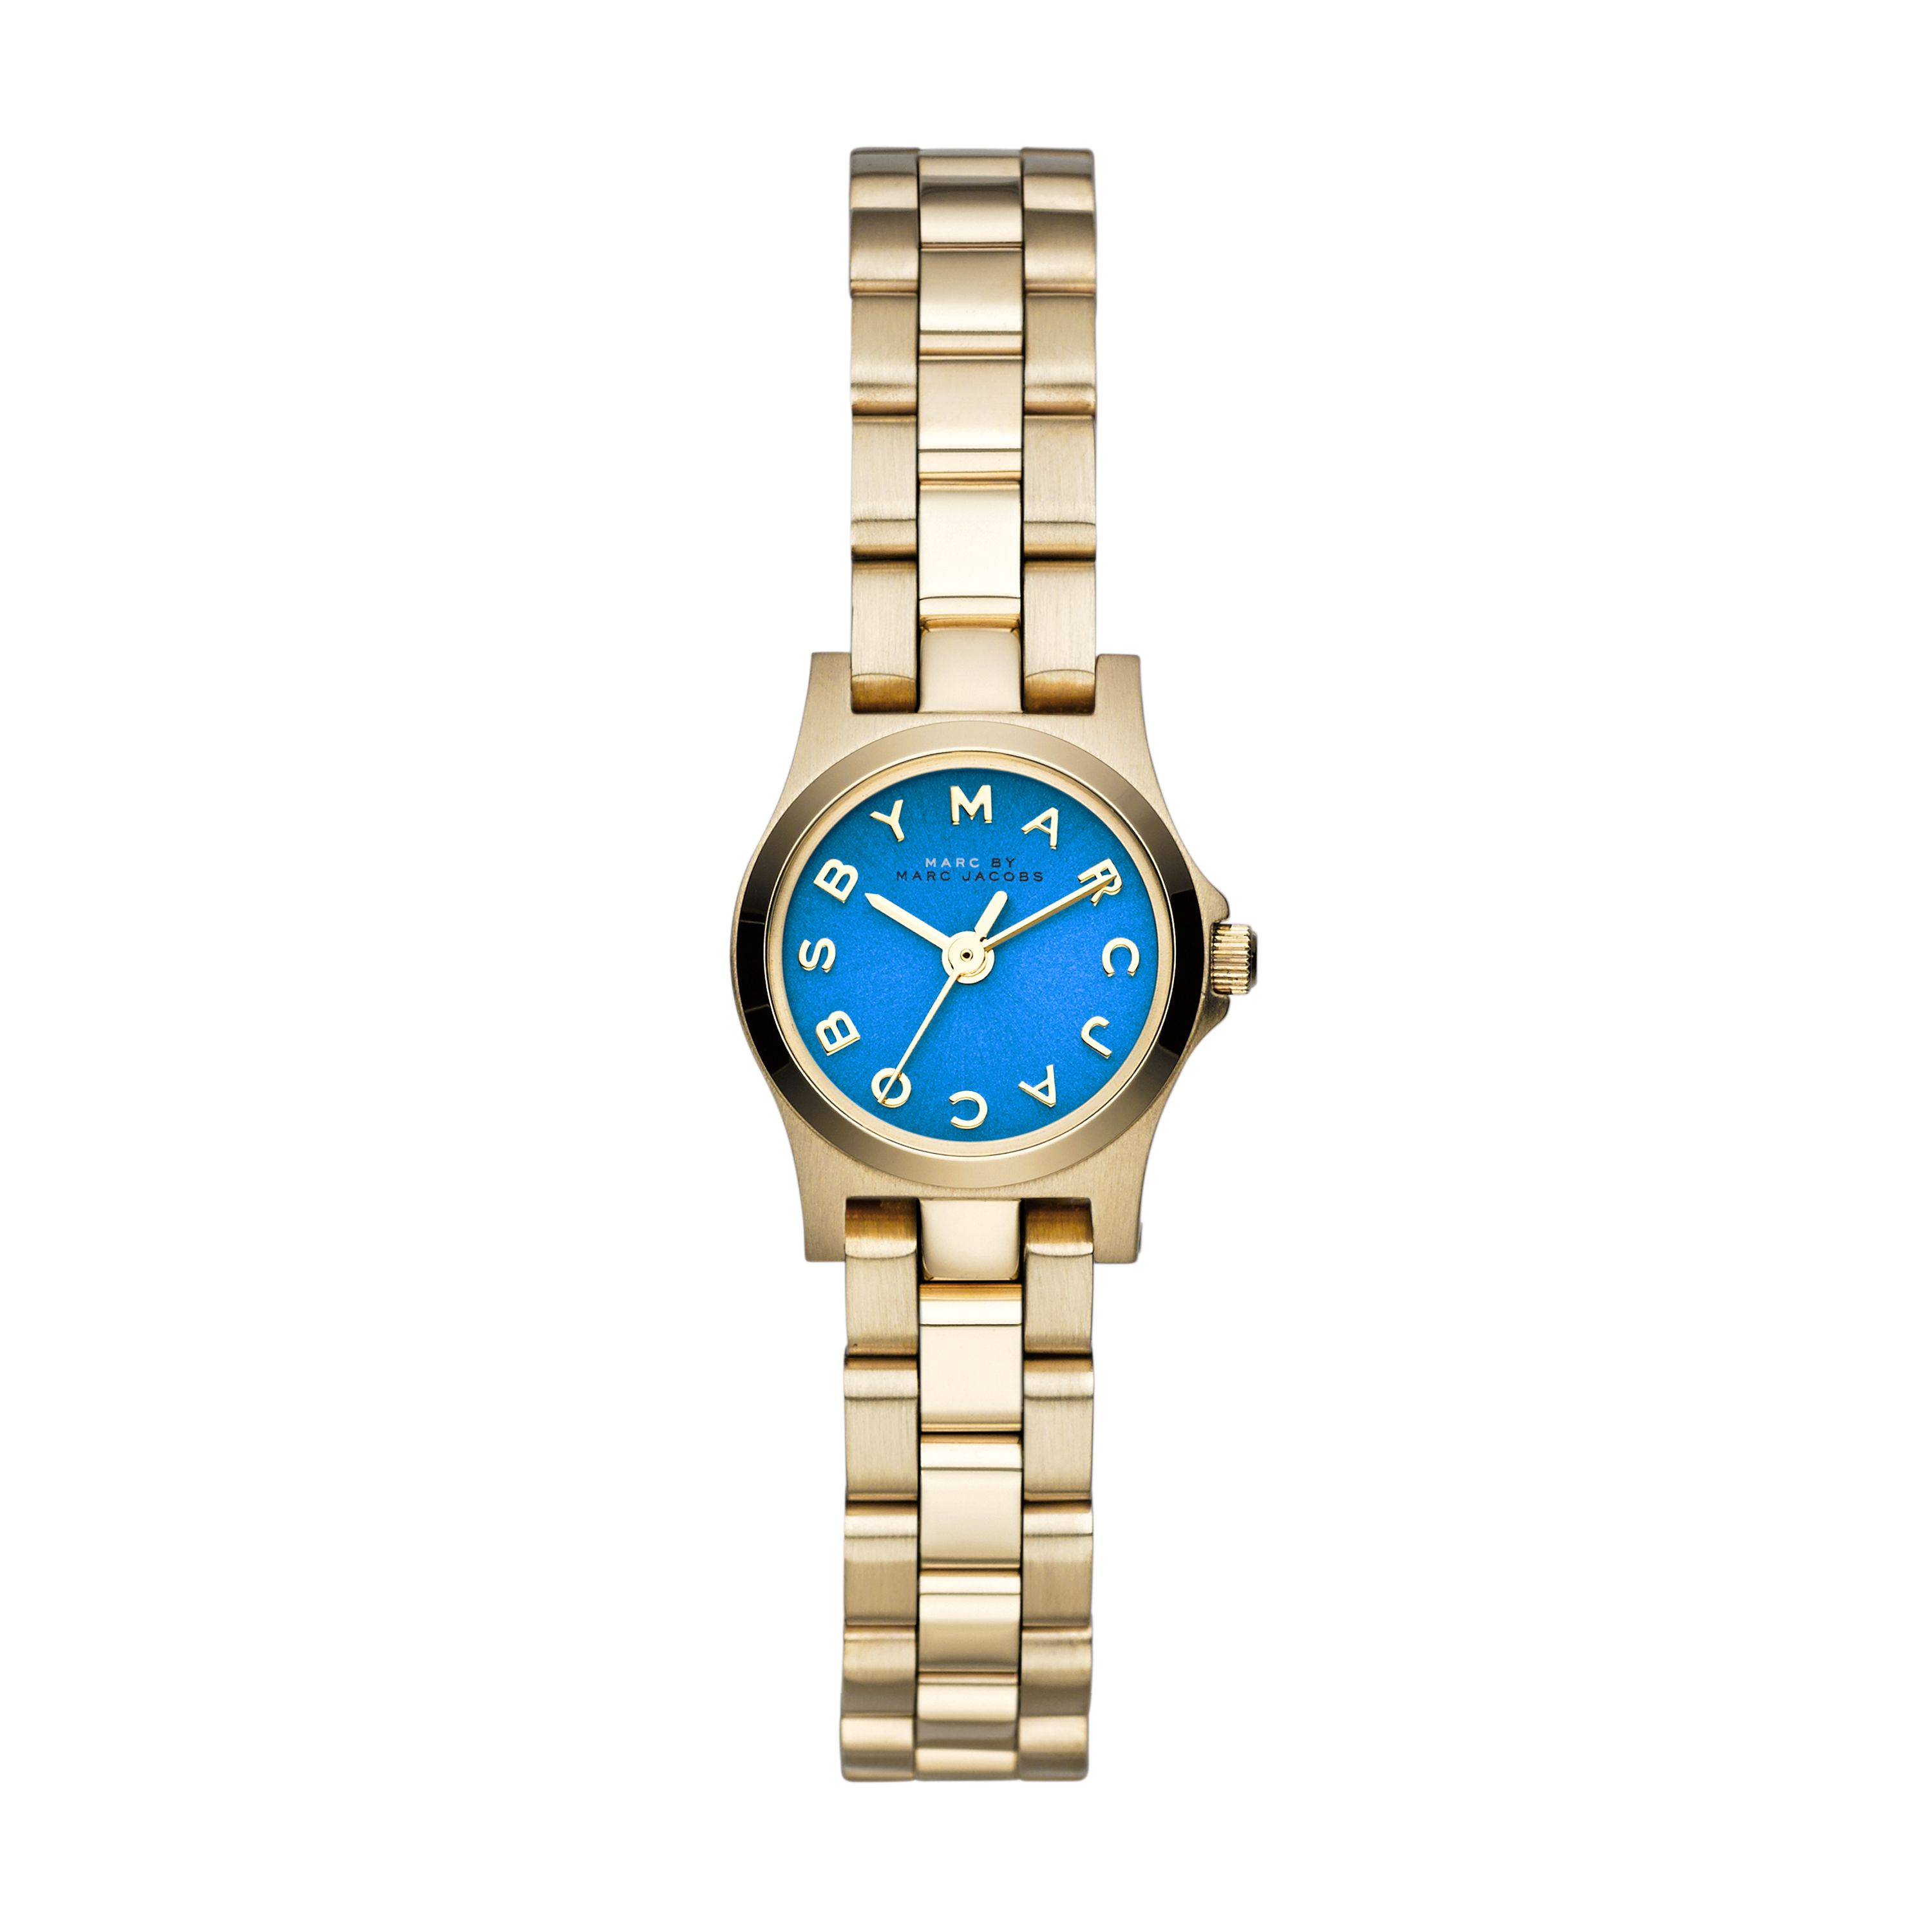 Mbm3310 henry ladies gold bracelet watch